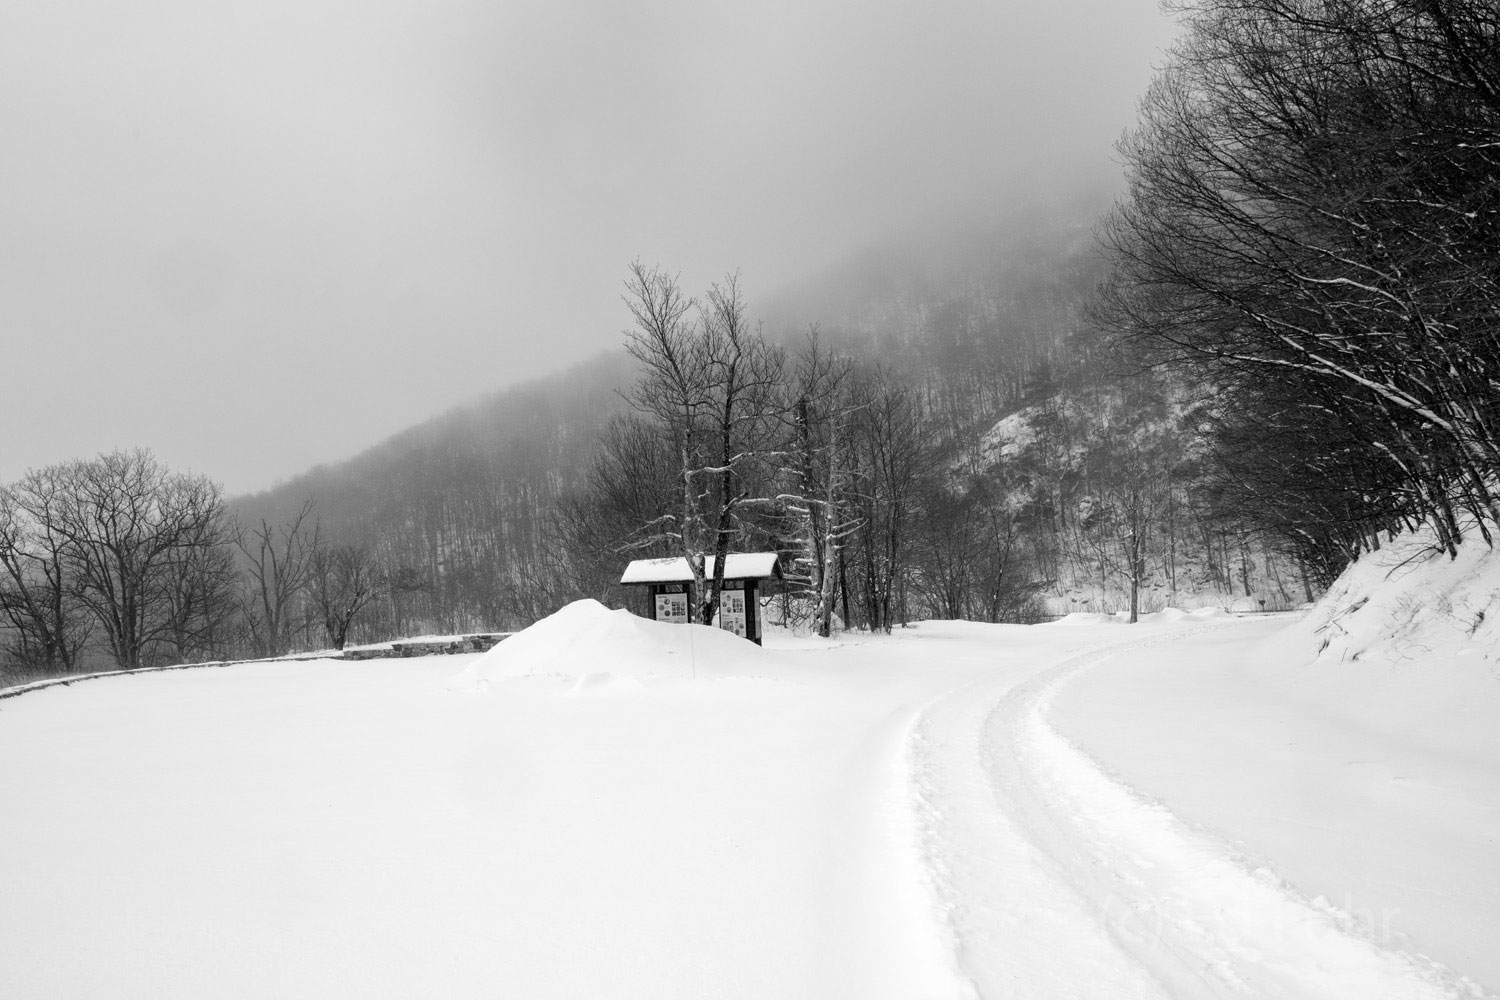 The entrance into Shenandoah is coated in a heavy snow.